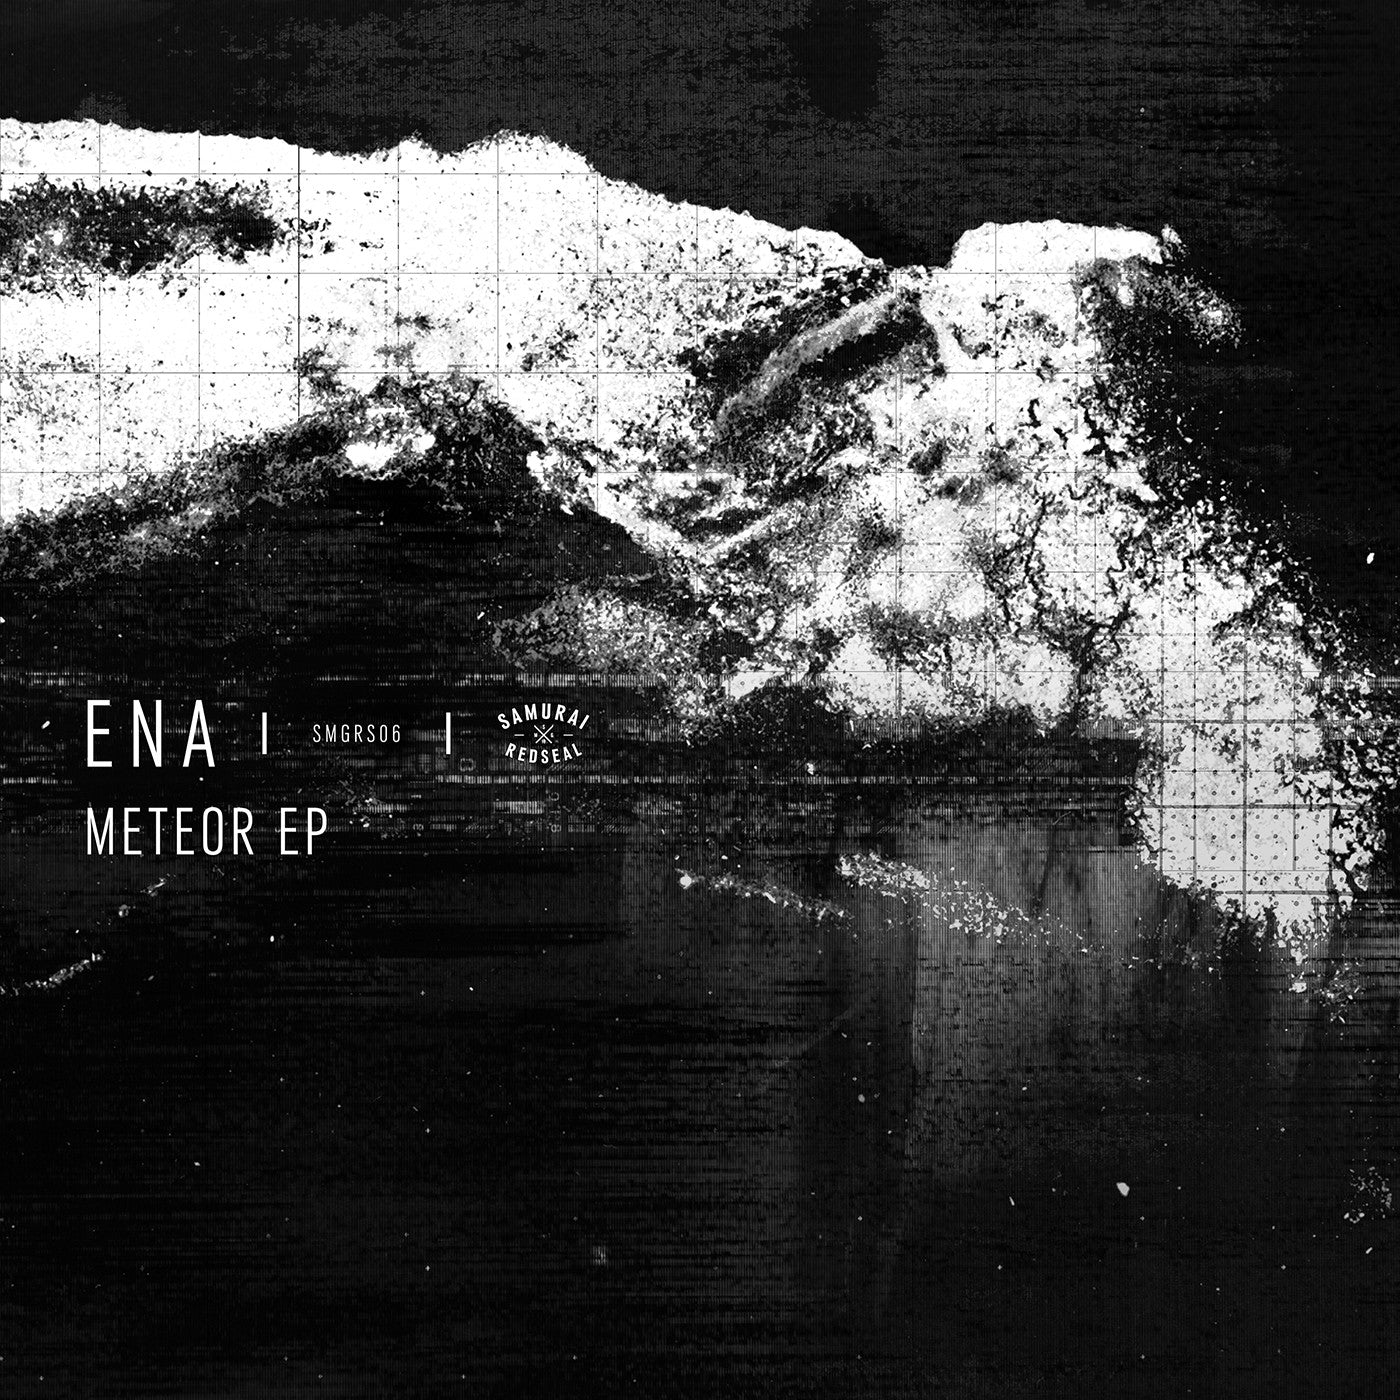 ENA - Meteor EP - Unearthed Sounds